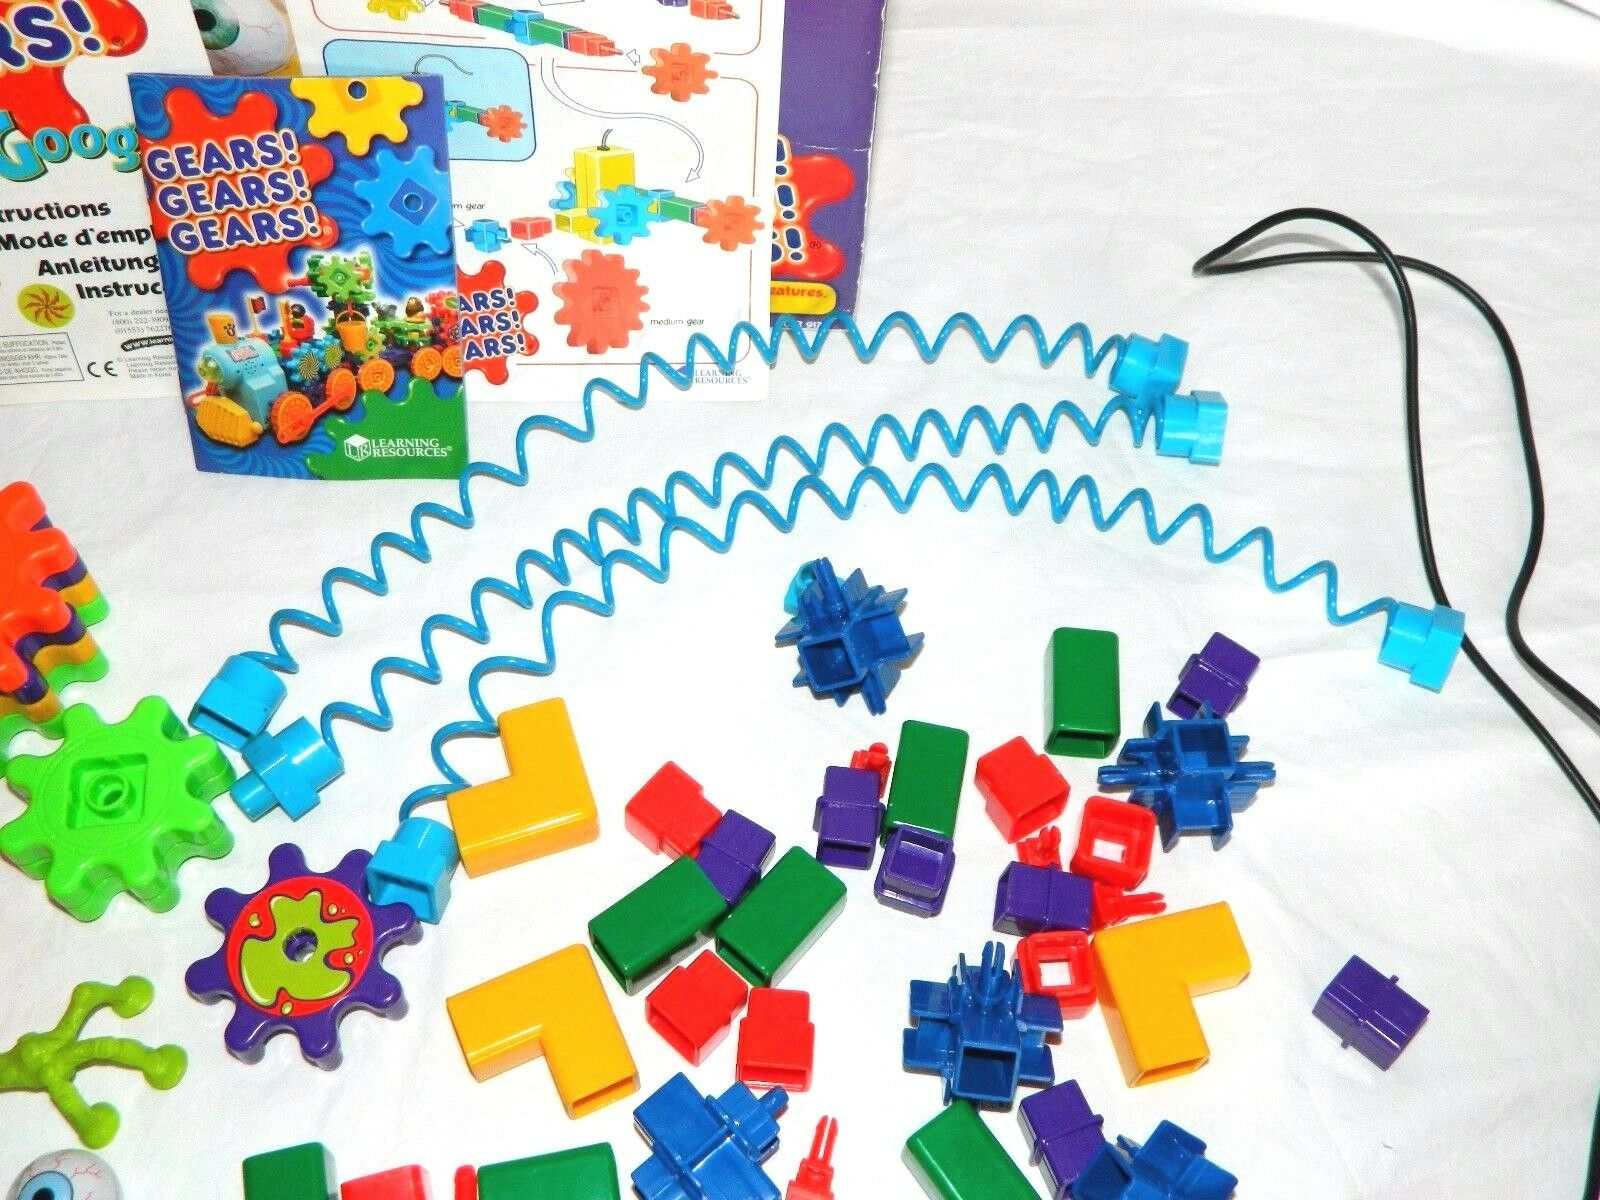 OOGLY GOOGLY Motorized GEARS Kids Building Set  96 96 96 PIECES a17305